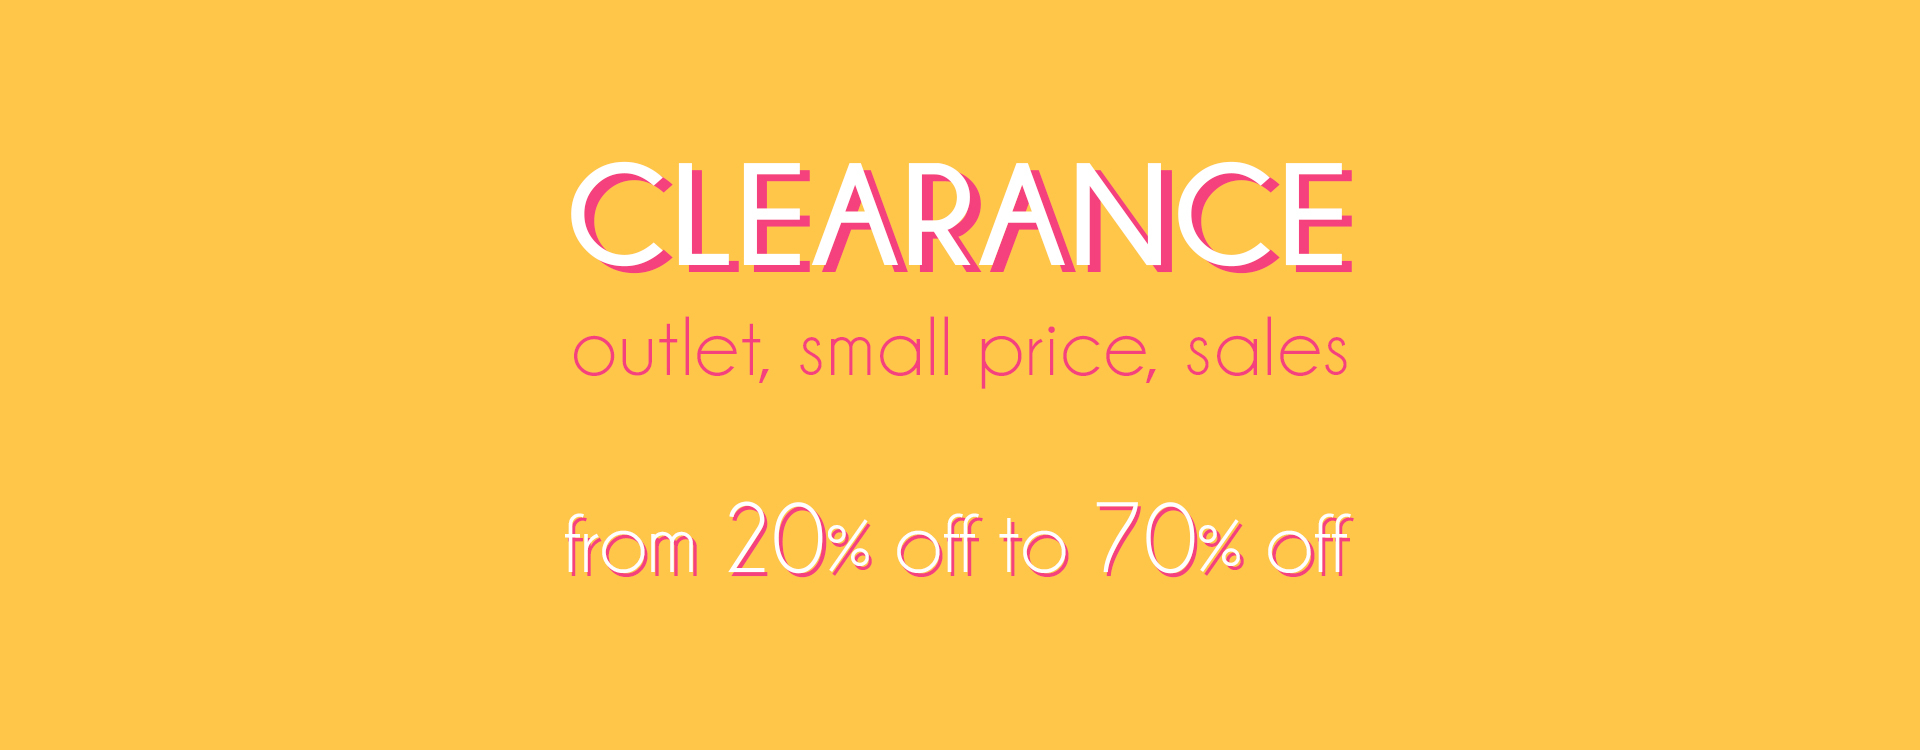 clearance outlet 60